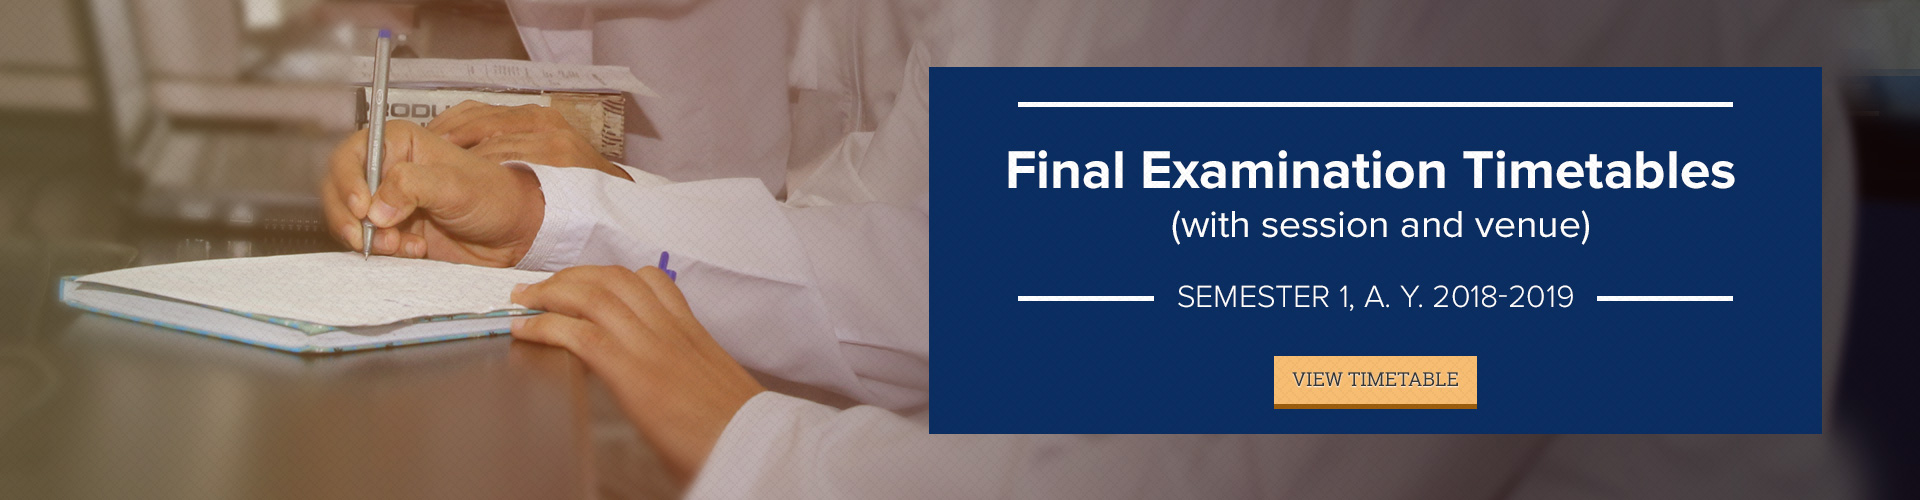 Final Examination Timetables (with session and venue) for Semester 1, A. Y. 2018-2019